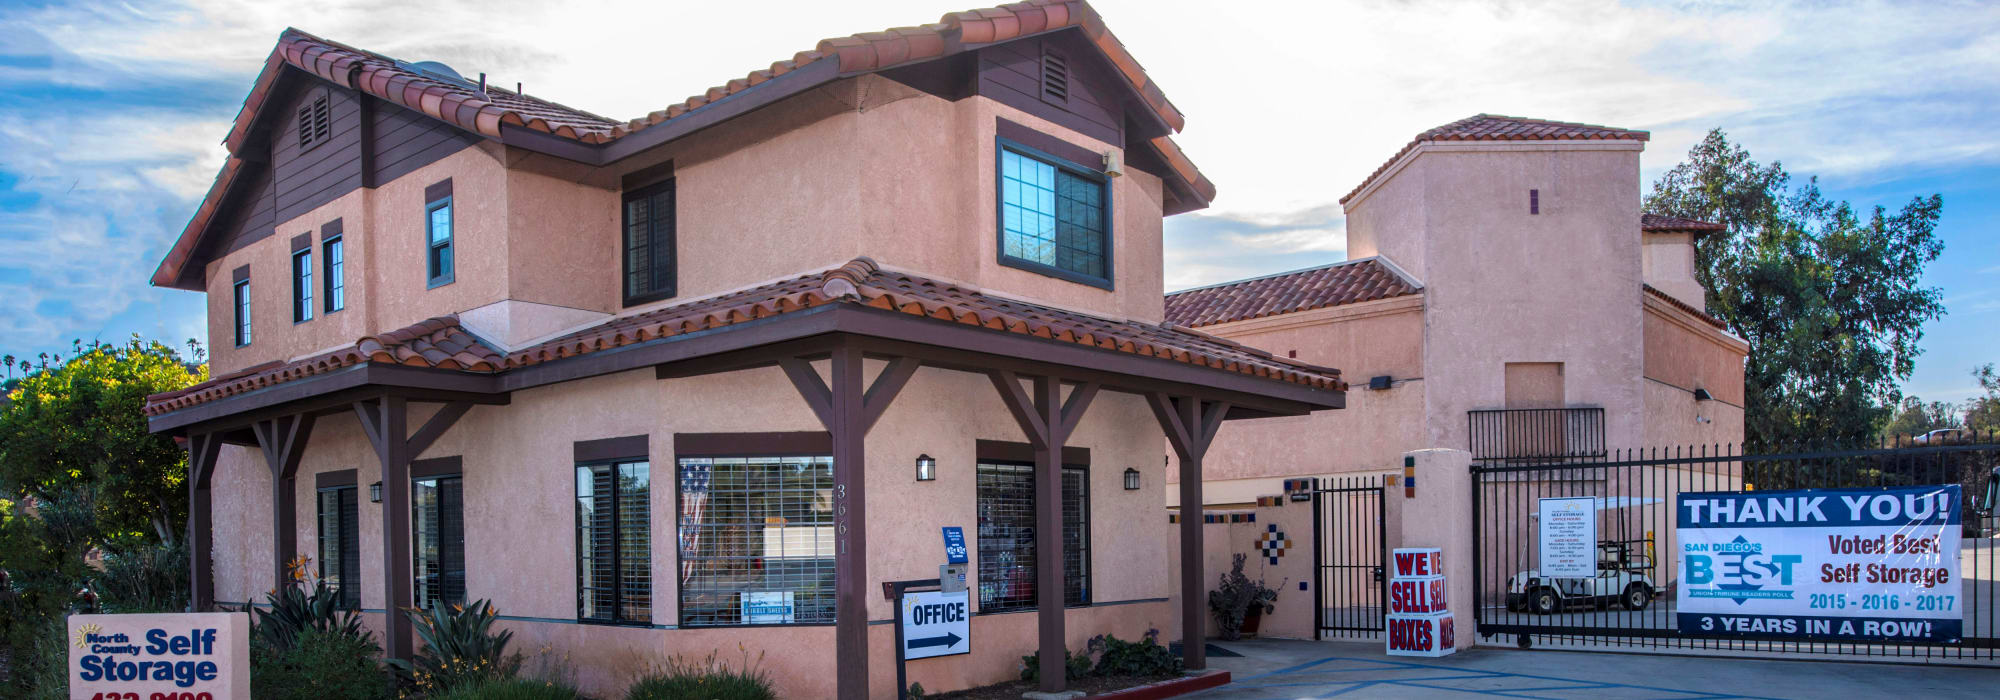 Branding on the exterior of North County Self Storage in Escondido, California